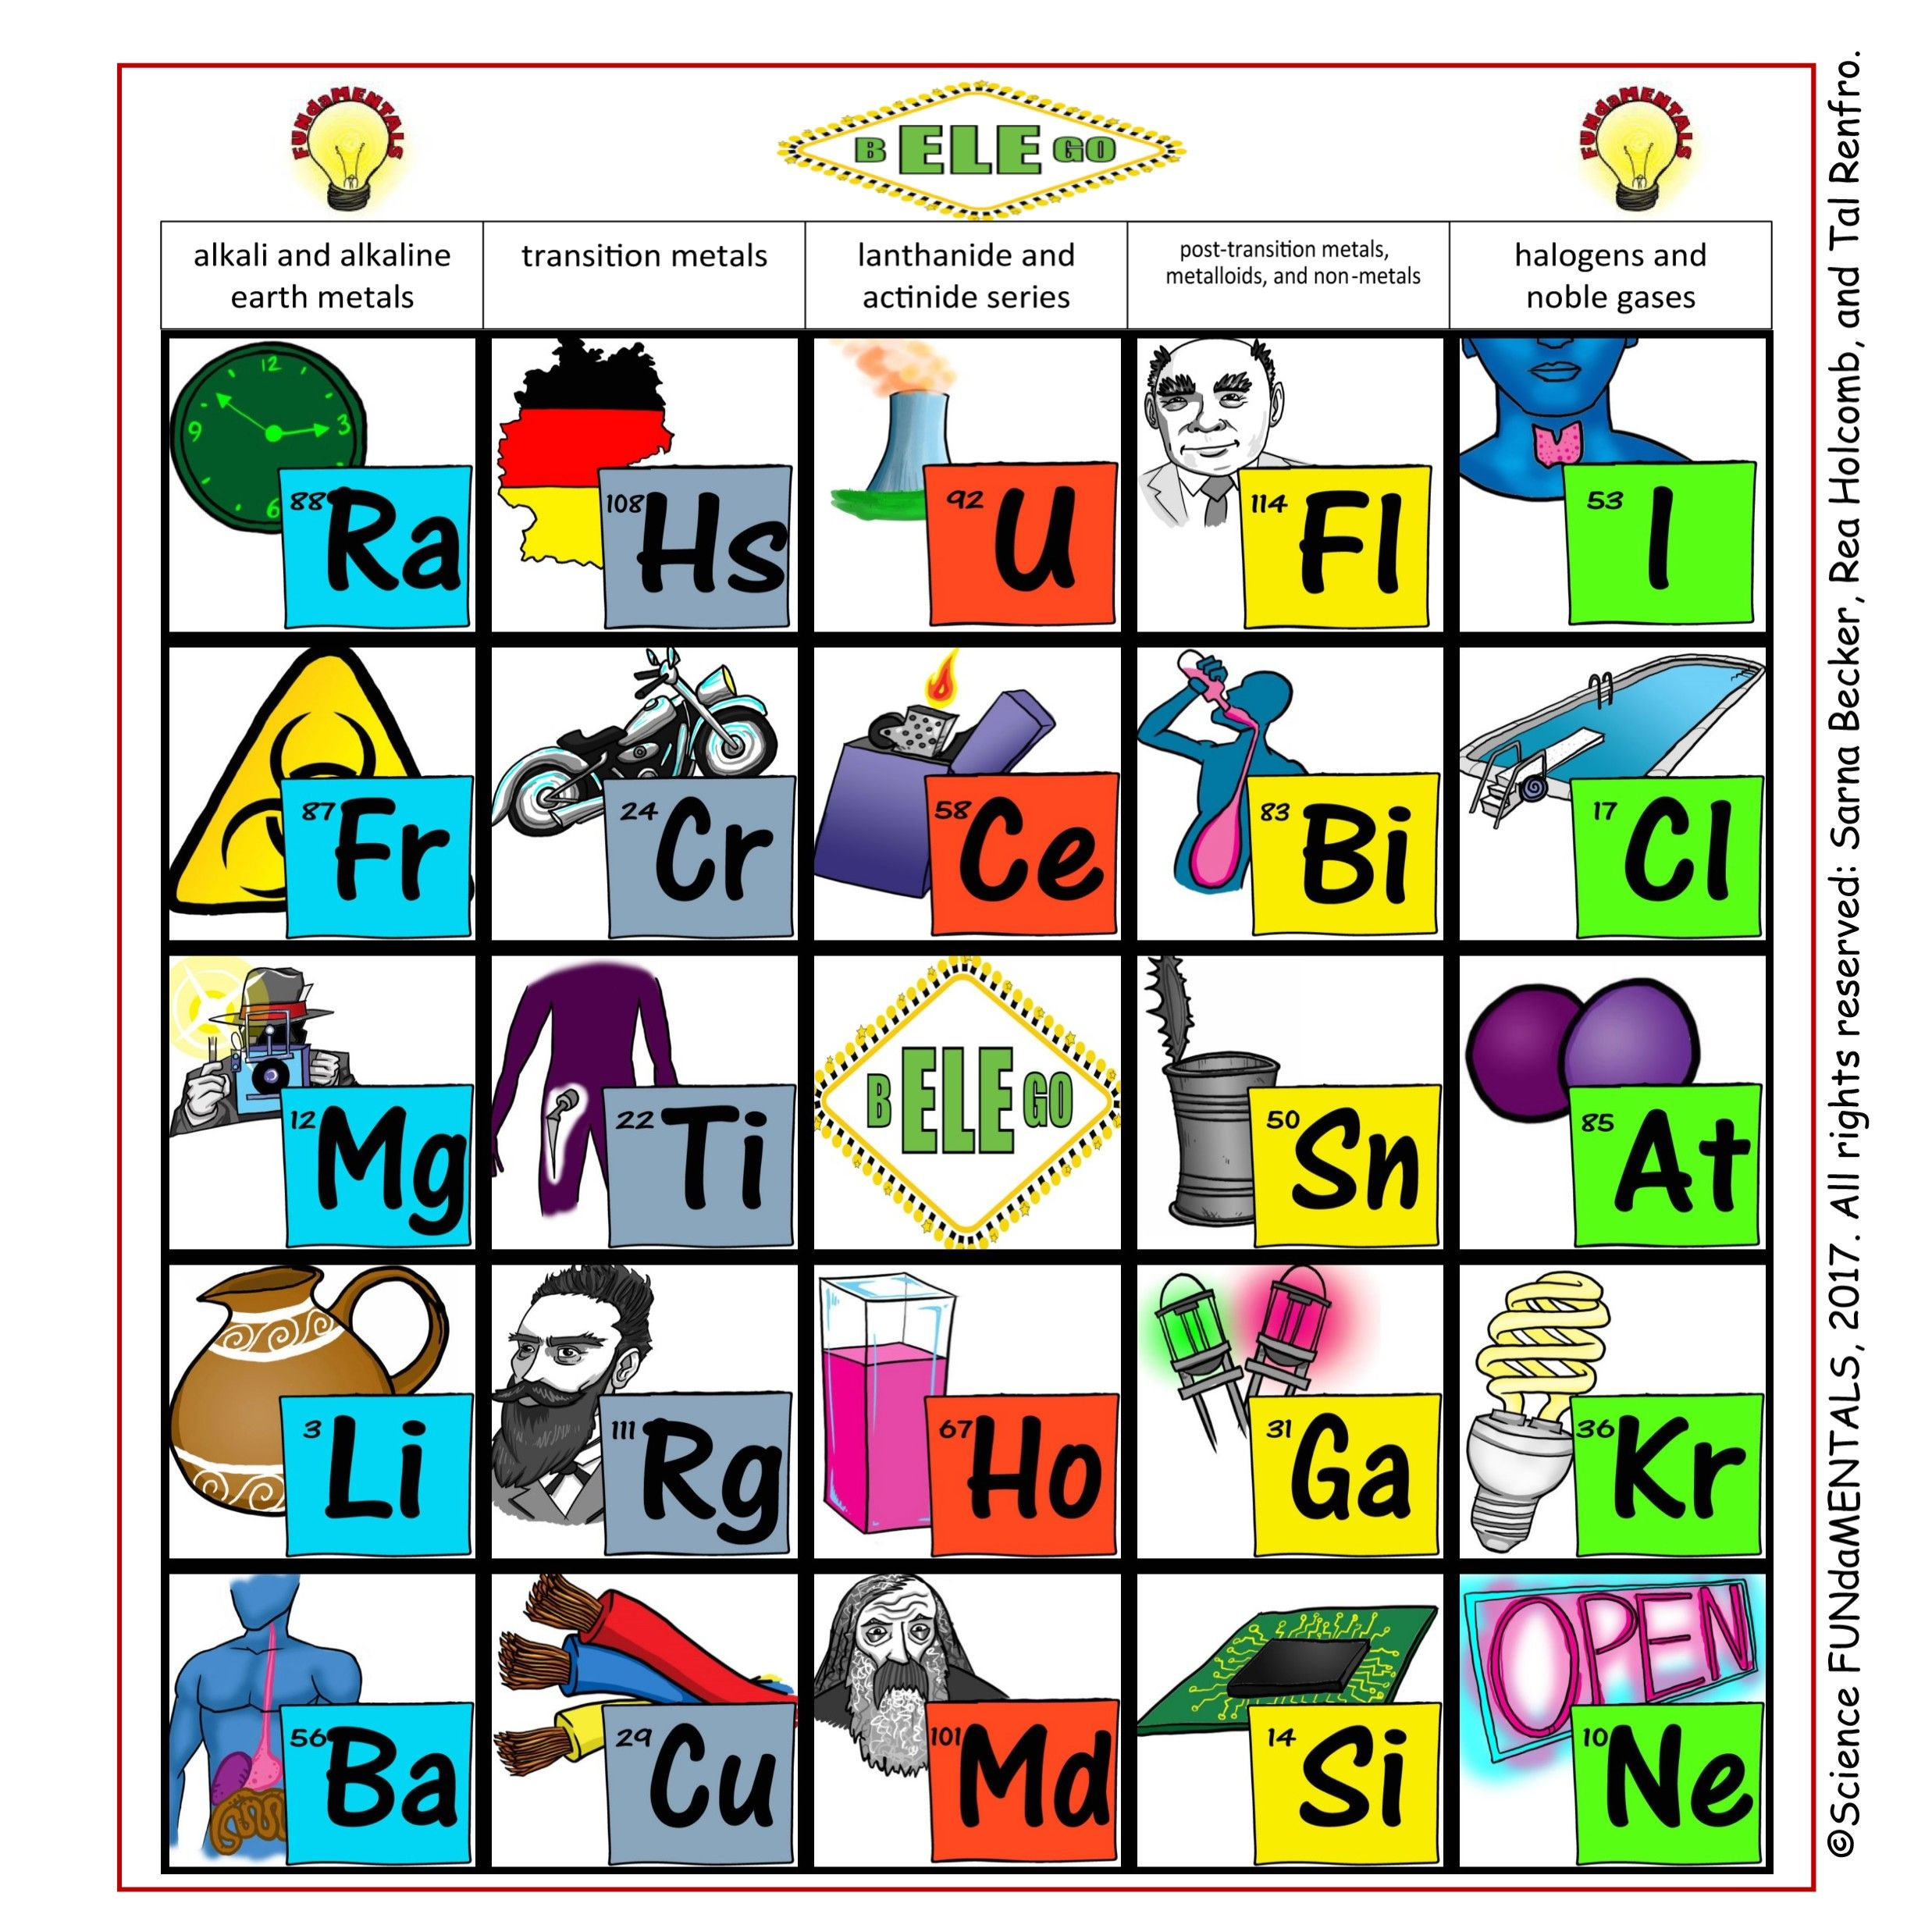 Periodic table showing solids liquids and gases image collections learn the elements of the periodic table in no time with this fun learn the elements gamestrikefo Gallery